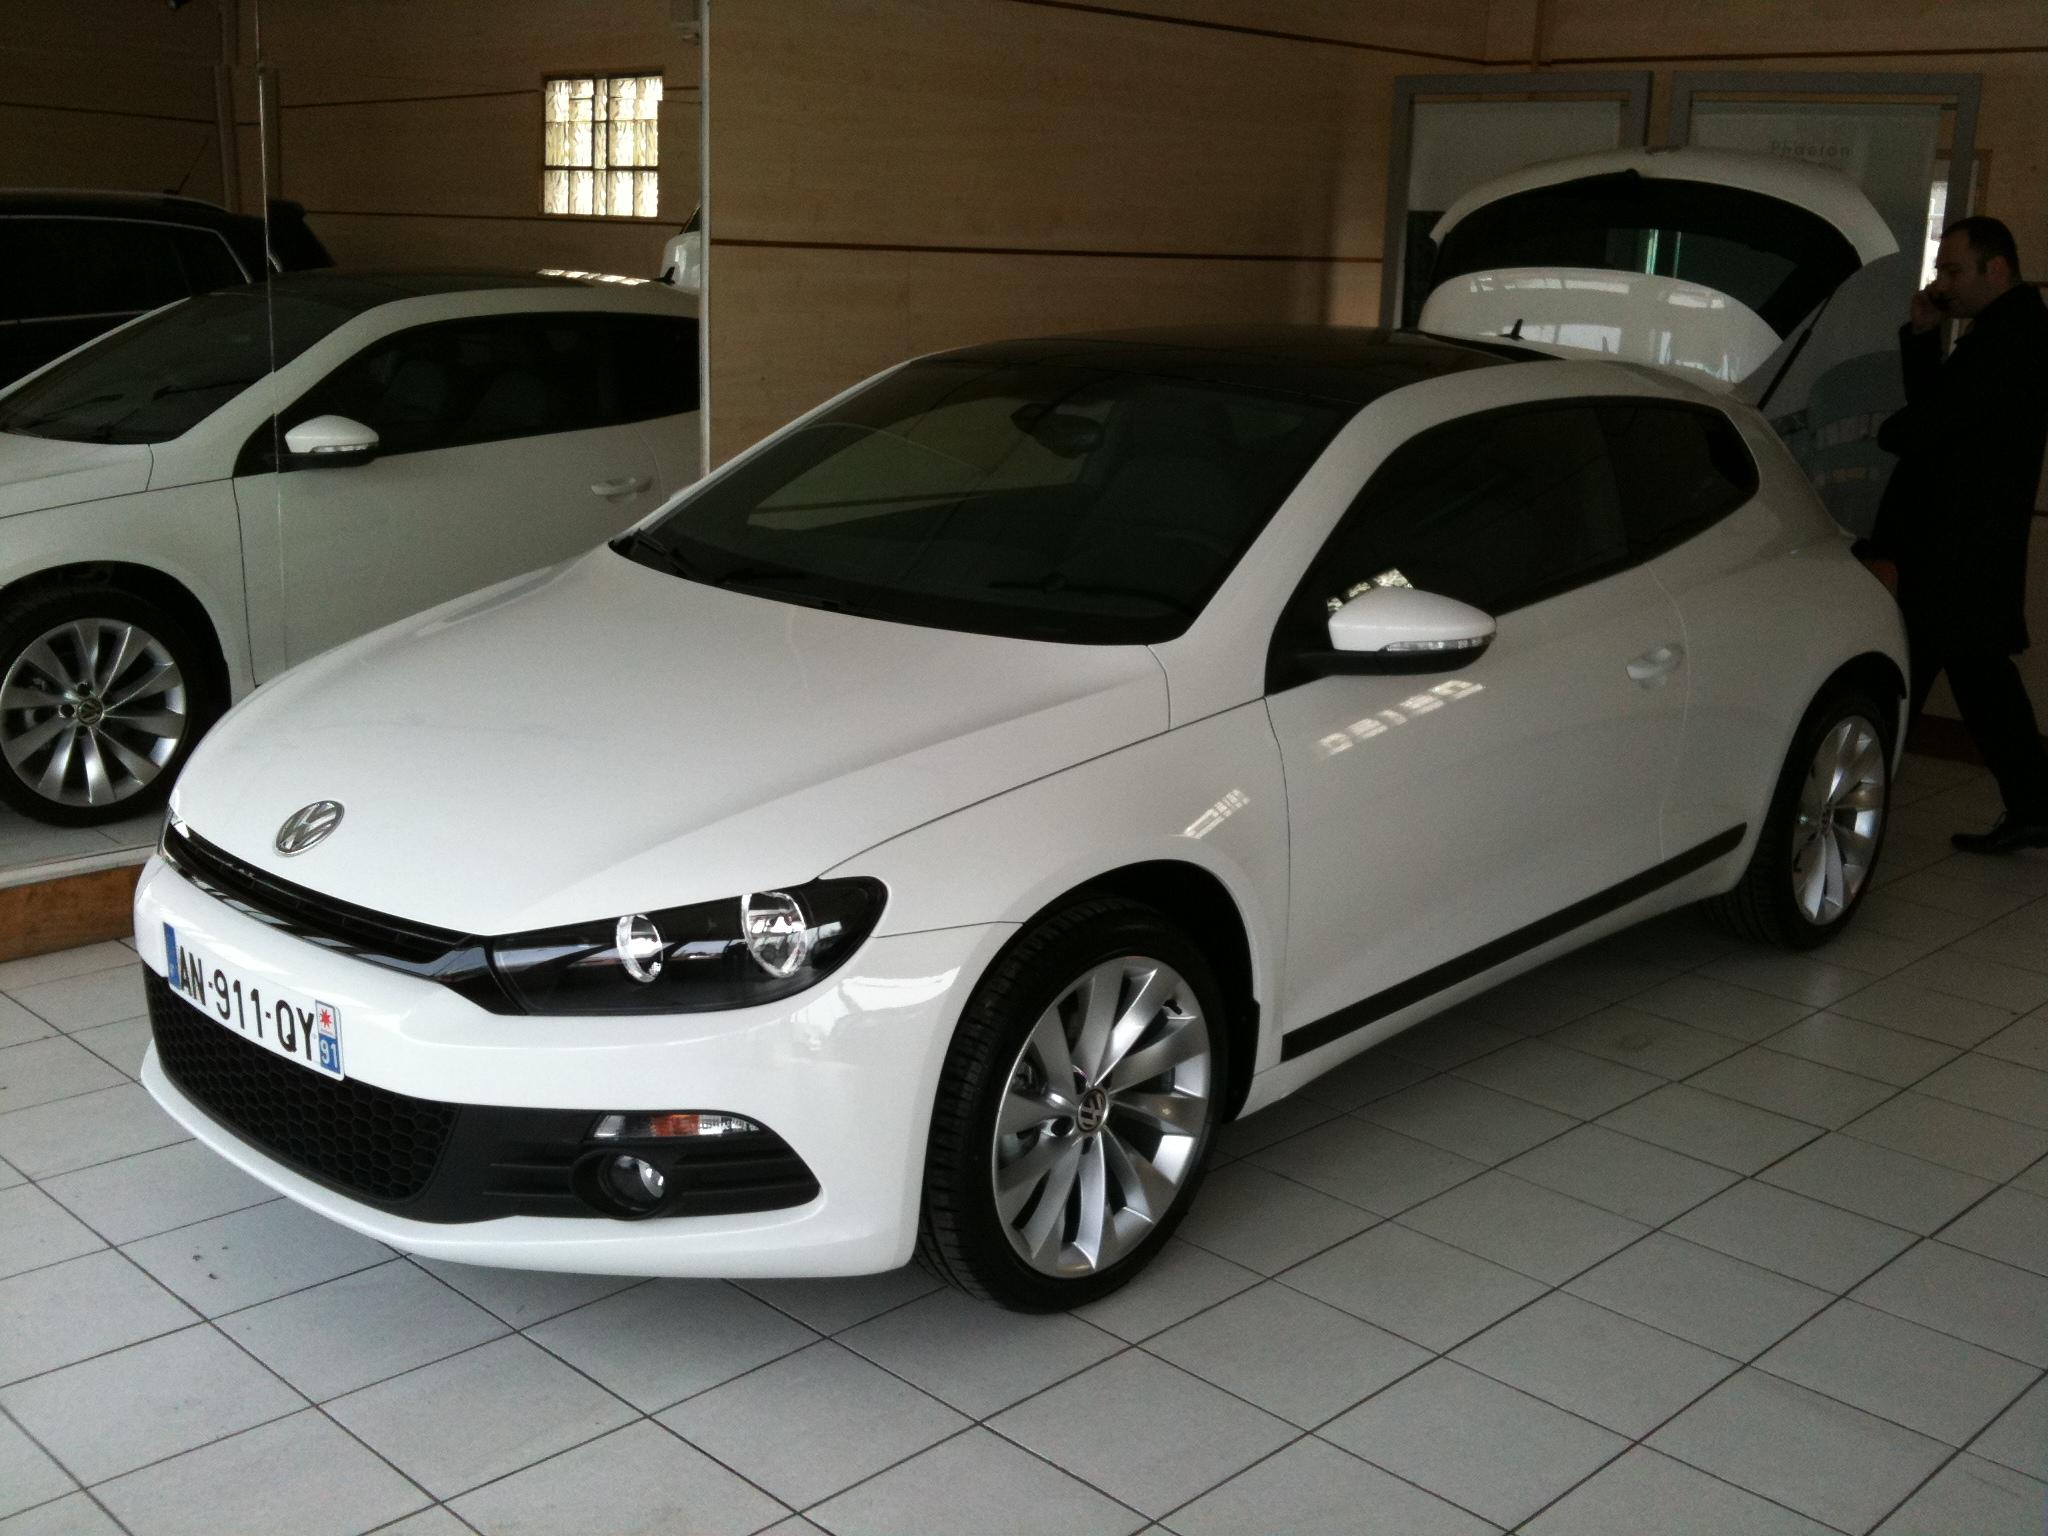 vw scirocco iii 2 0 tdi 140 carat 2010 mk1 page 4 autres v a g forum volkswagen golf iv. Black Bedroom Furniture Sets. Home Design Ideas